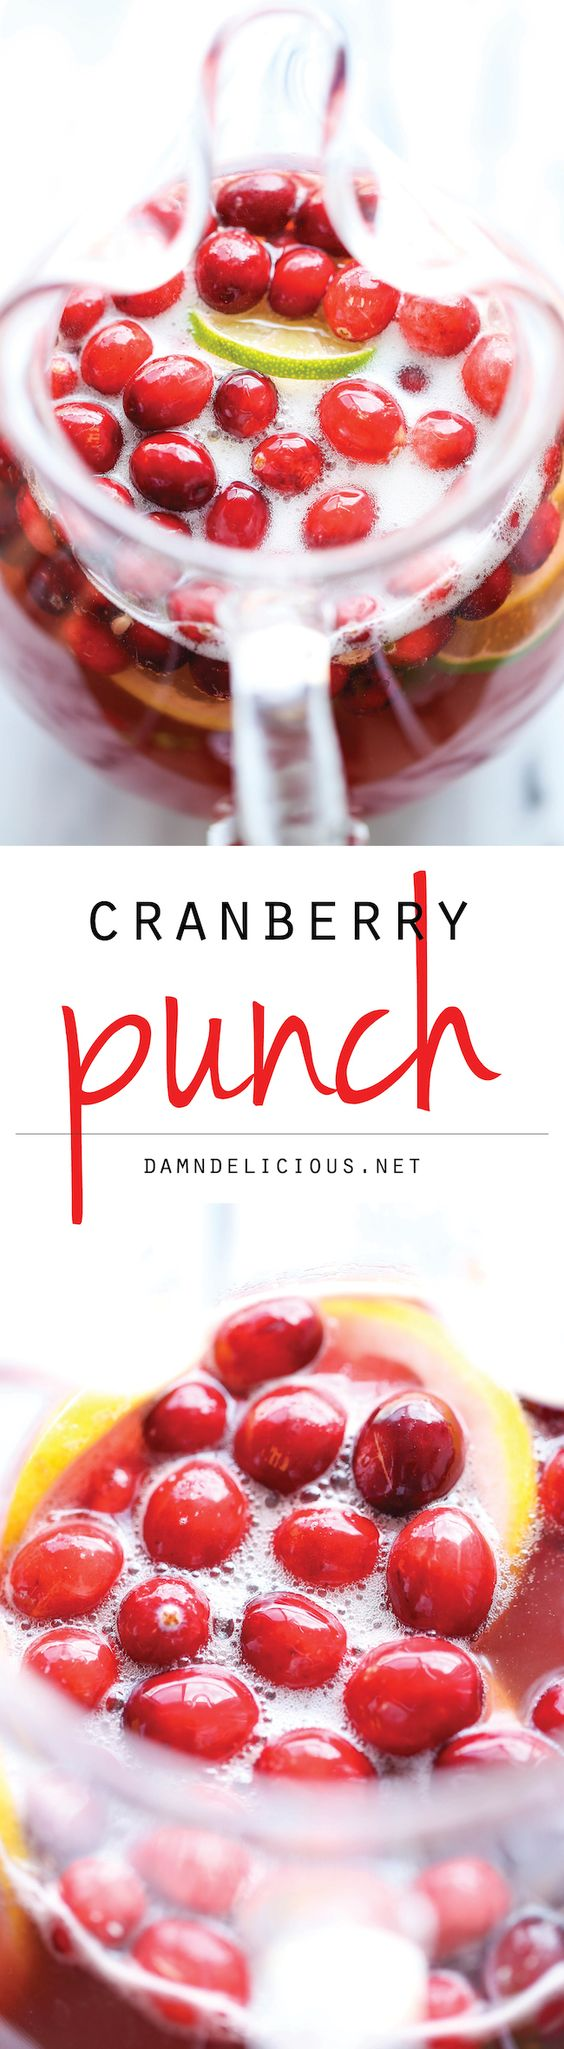 Alcohol Free Cranberry Party Punch Recipe via Damn Delicious - A super easy, refreshing drink so perfect for the holidays! The BEST Easy Non-Alcoholic Drinks Recipes - Creative Mocktails and Family Friendly, Alcohol-Free, Big Batch Party Beverages for a Crowd!